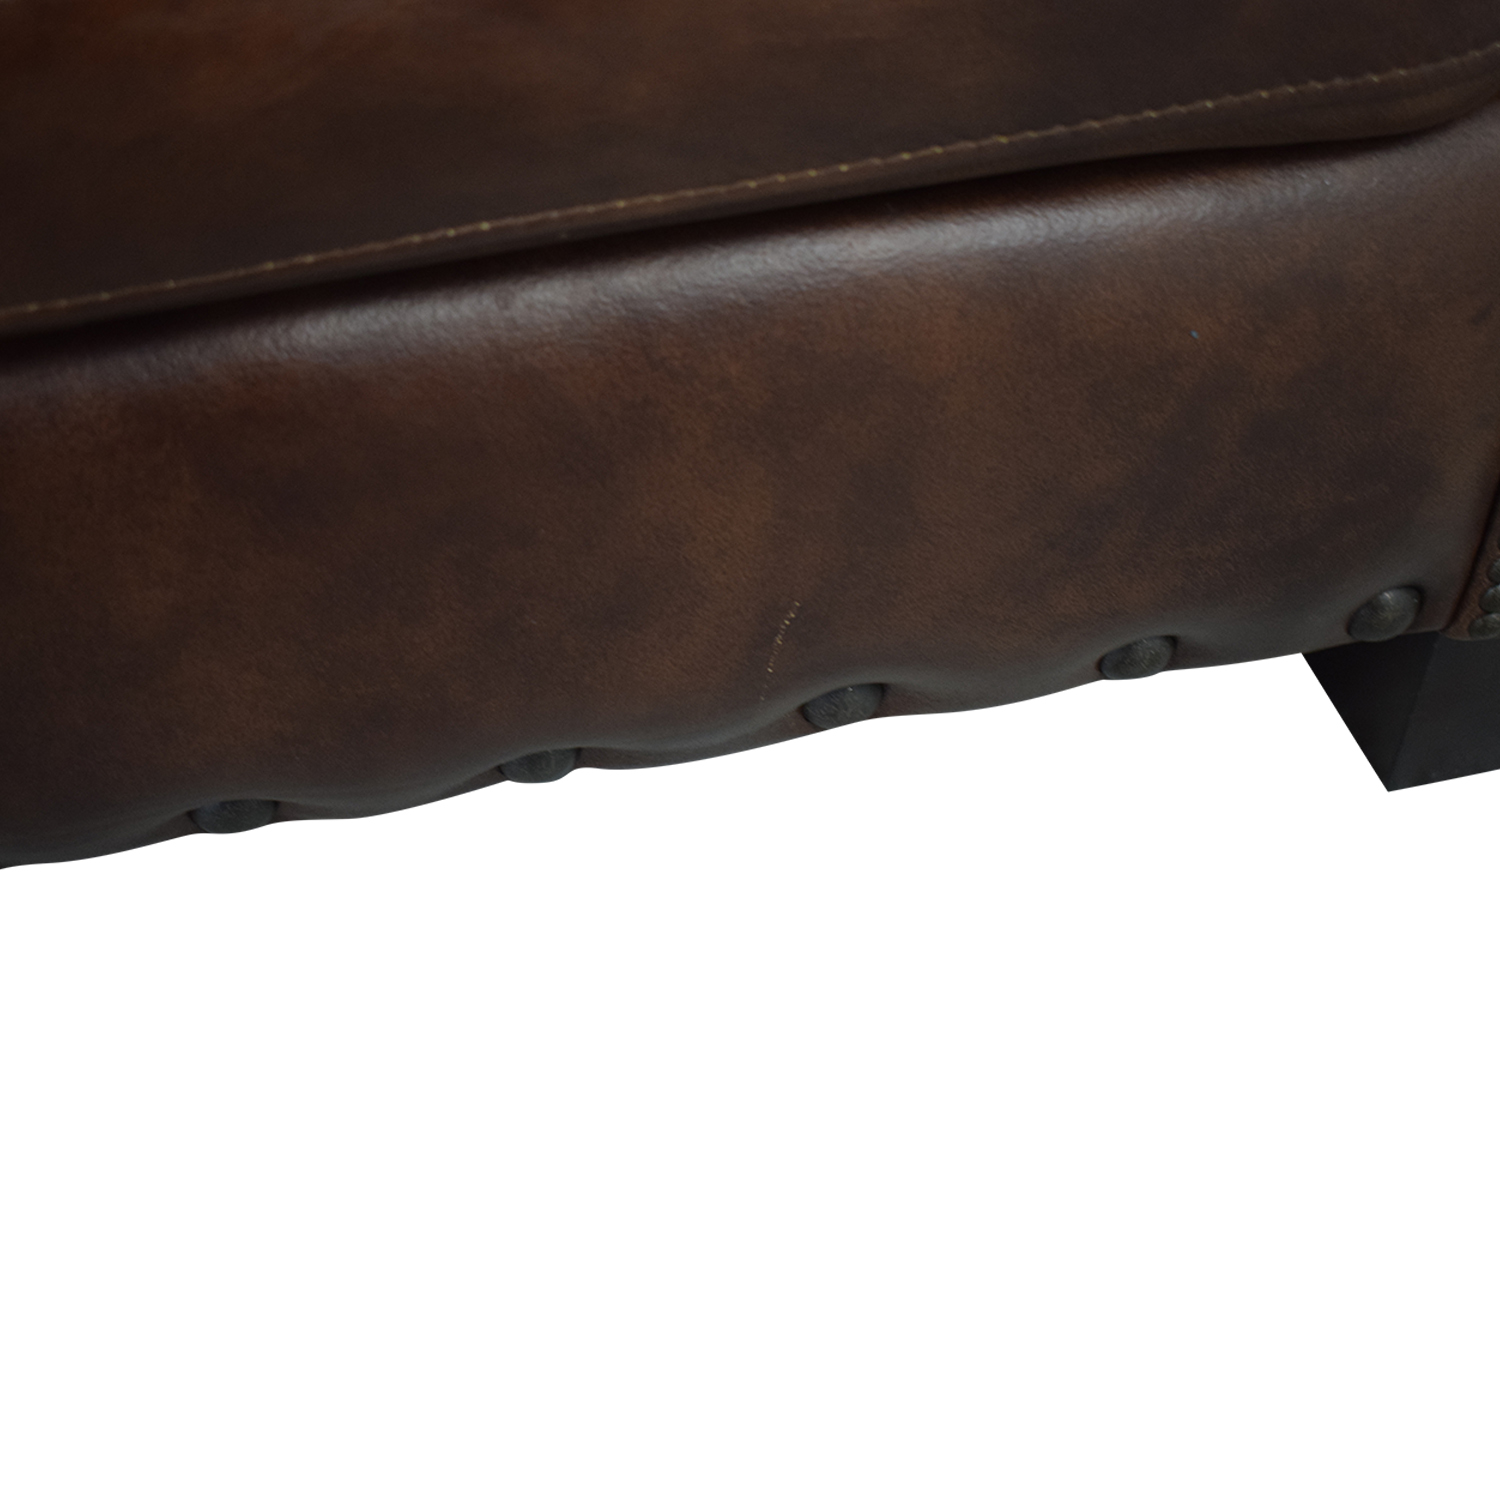 Bob's Discount Furniture Bob's Discount Furniture Kennedy Leather Sofa discount